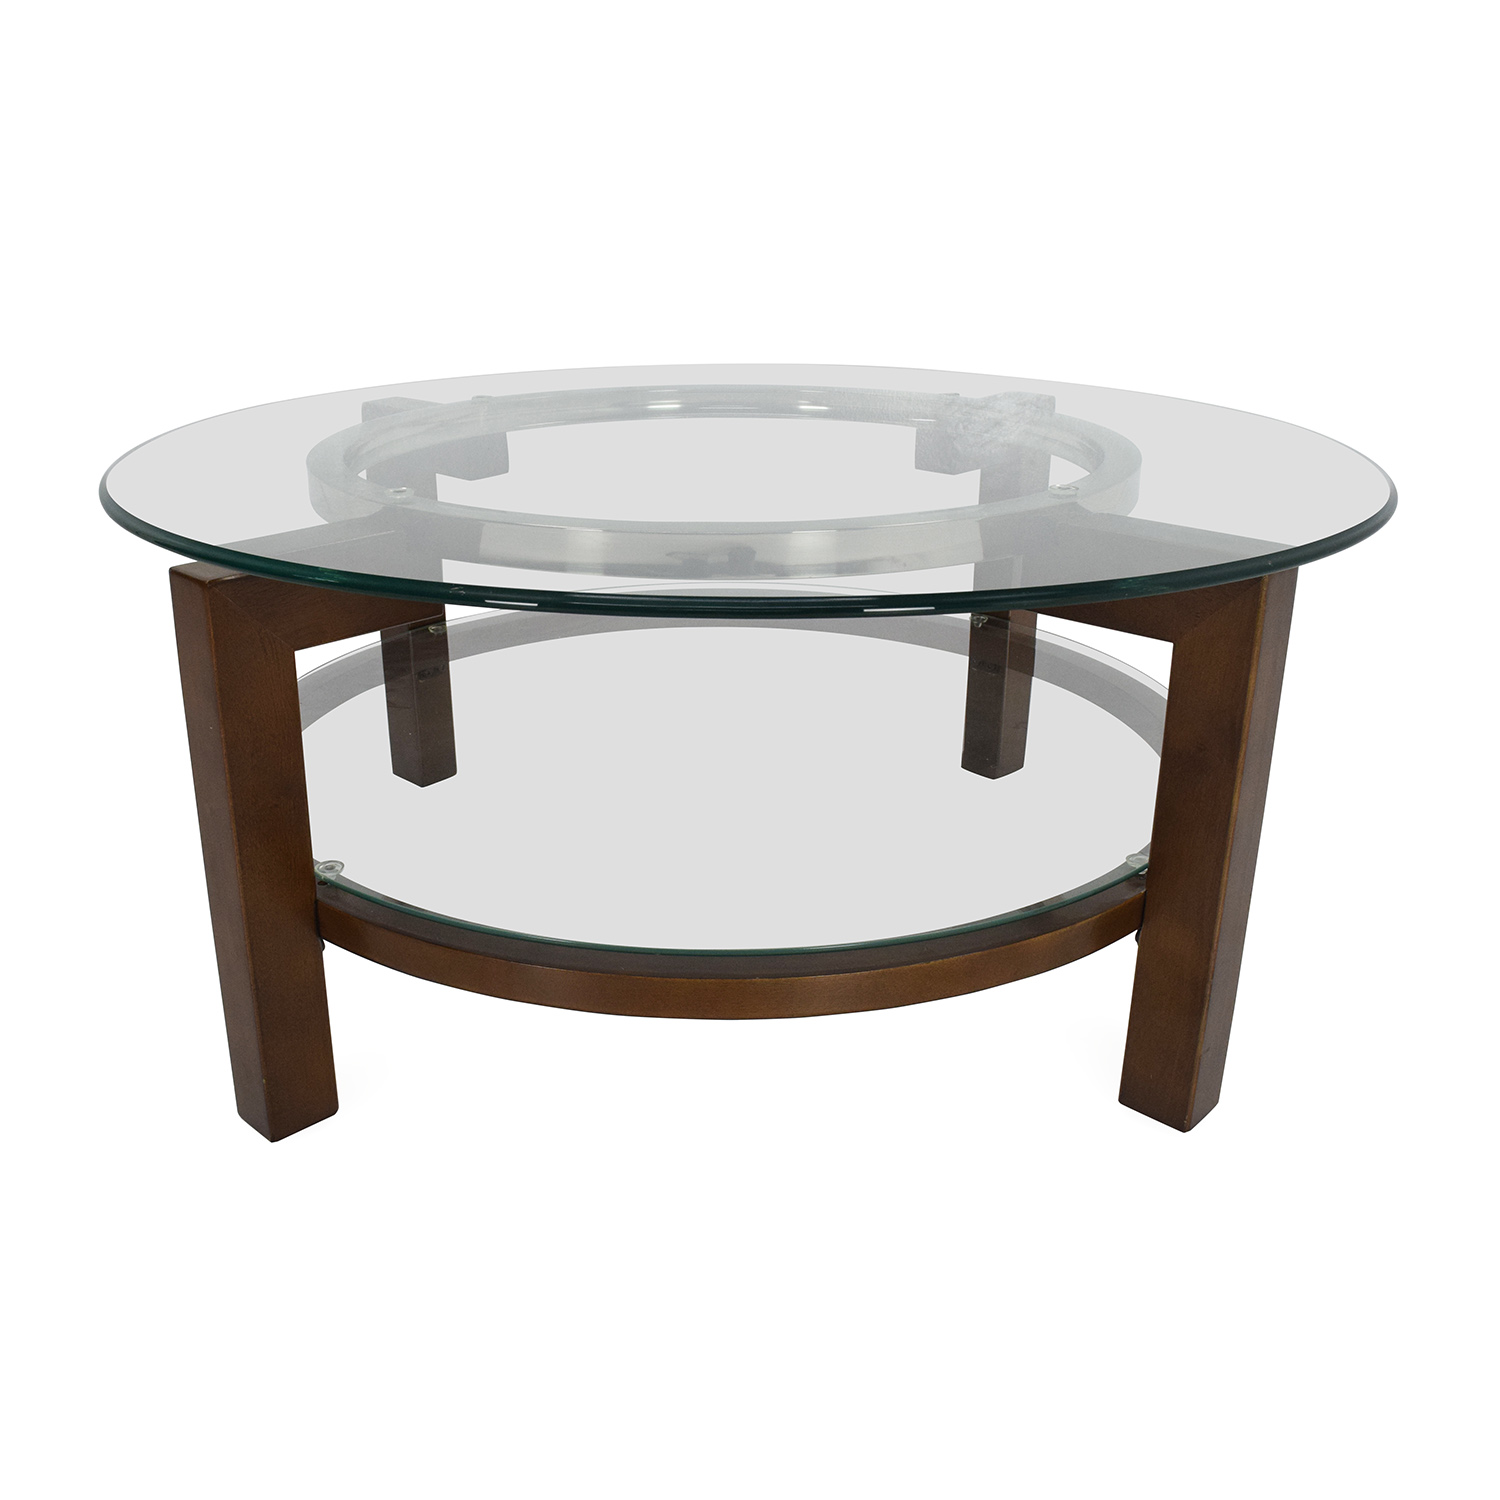 Coffee Tables Glass Top 80 Off Cb2 Cb2 Glass Top Coffee Table Tables